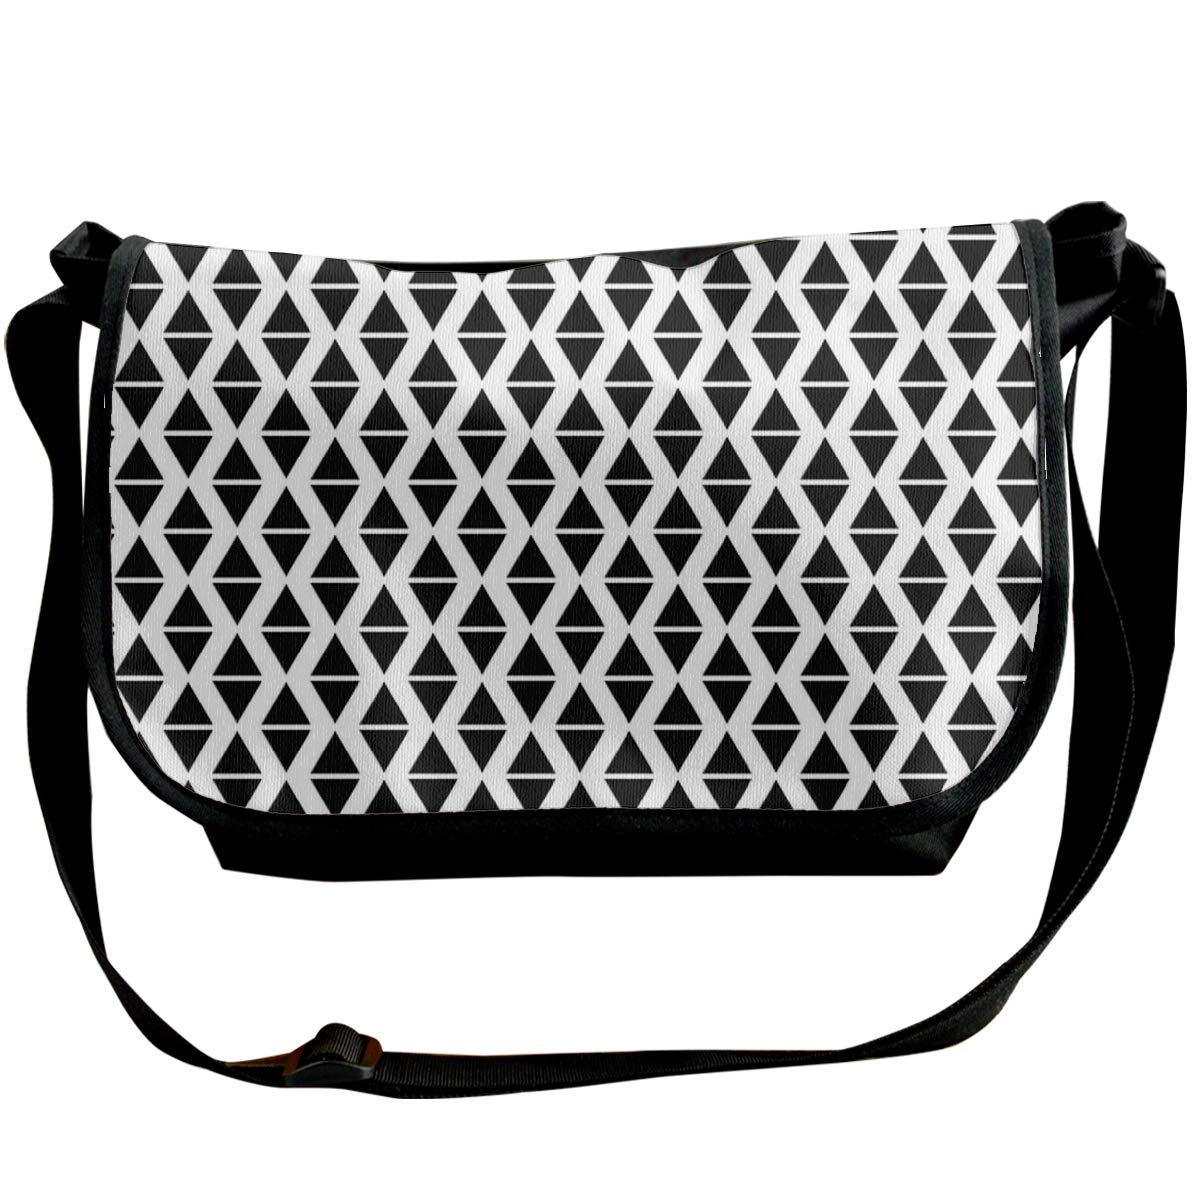 Taslilye Triangle Seamless Pattern Background Abstract Personalized Wide Crossbody Shoulder Bag For Men And Women For Daily Work Or Travel